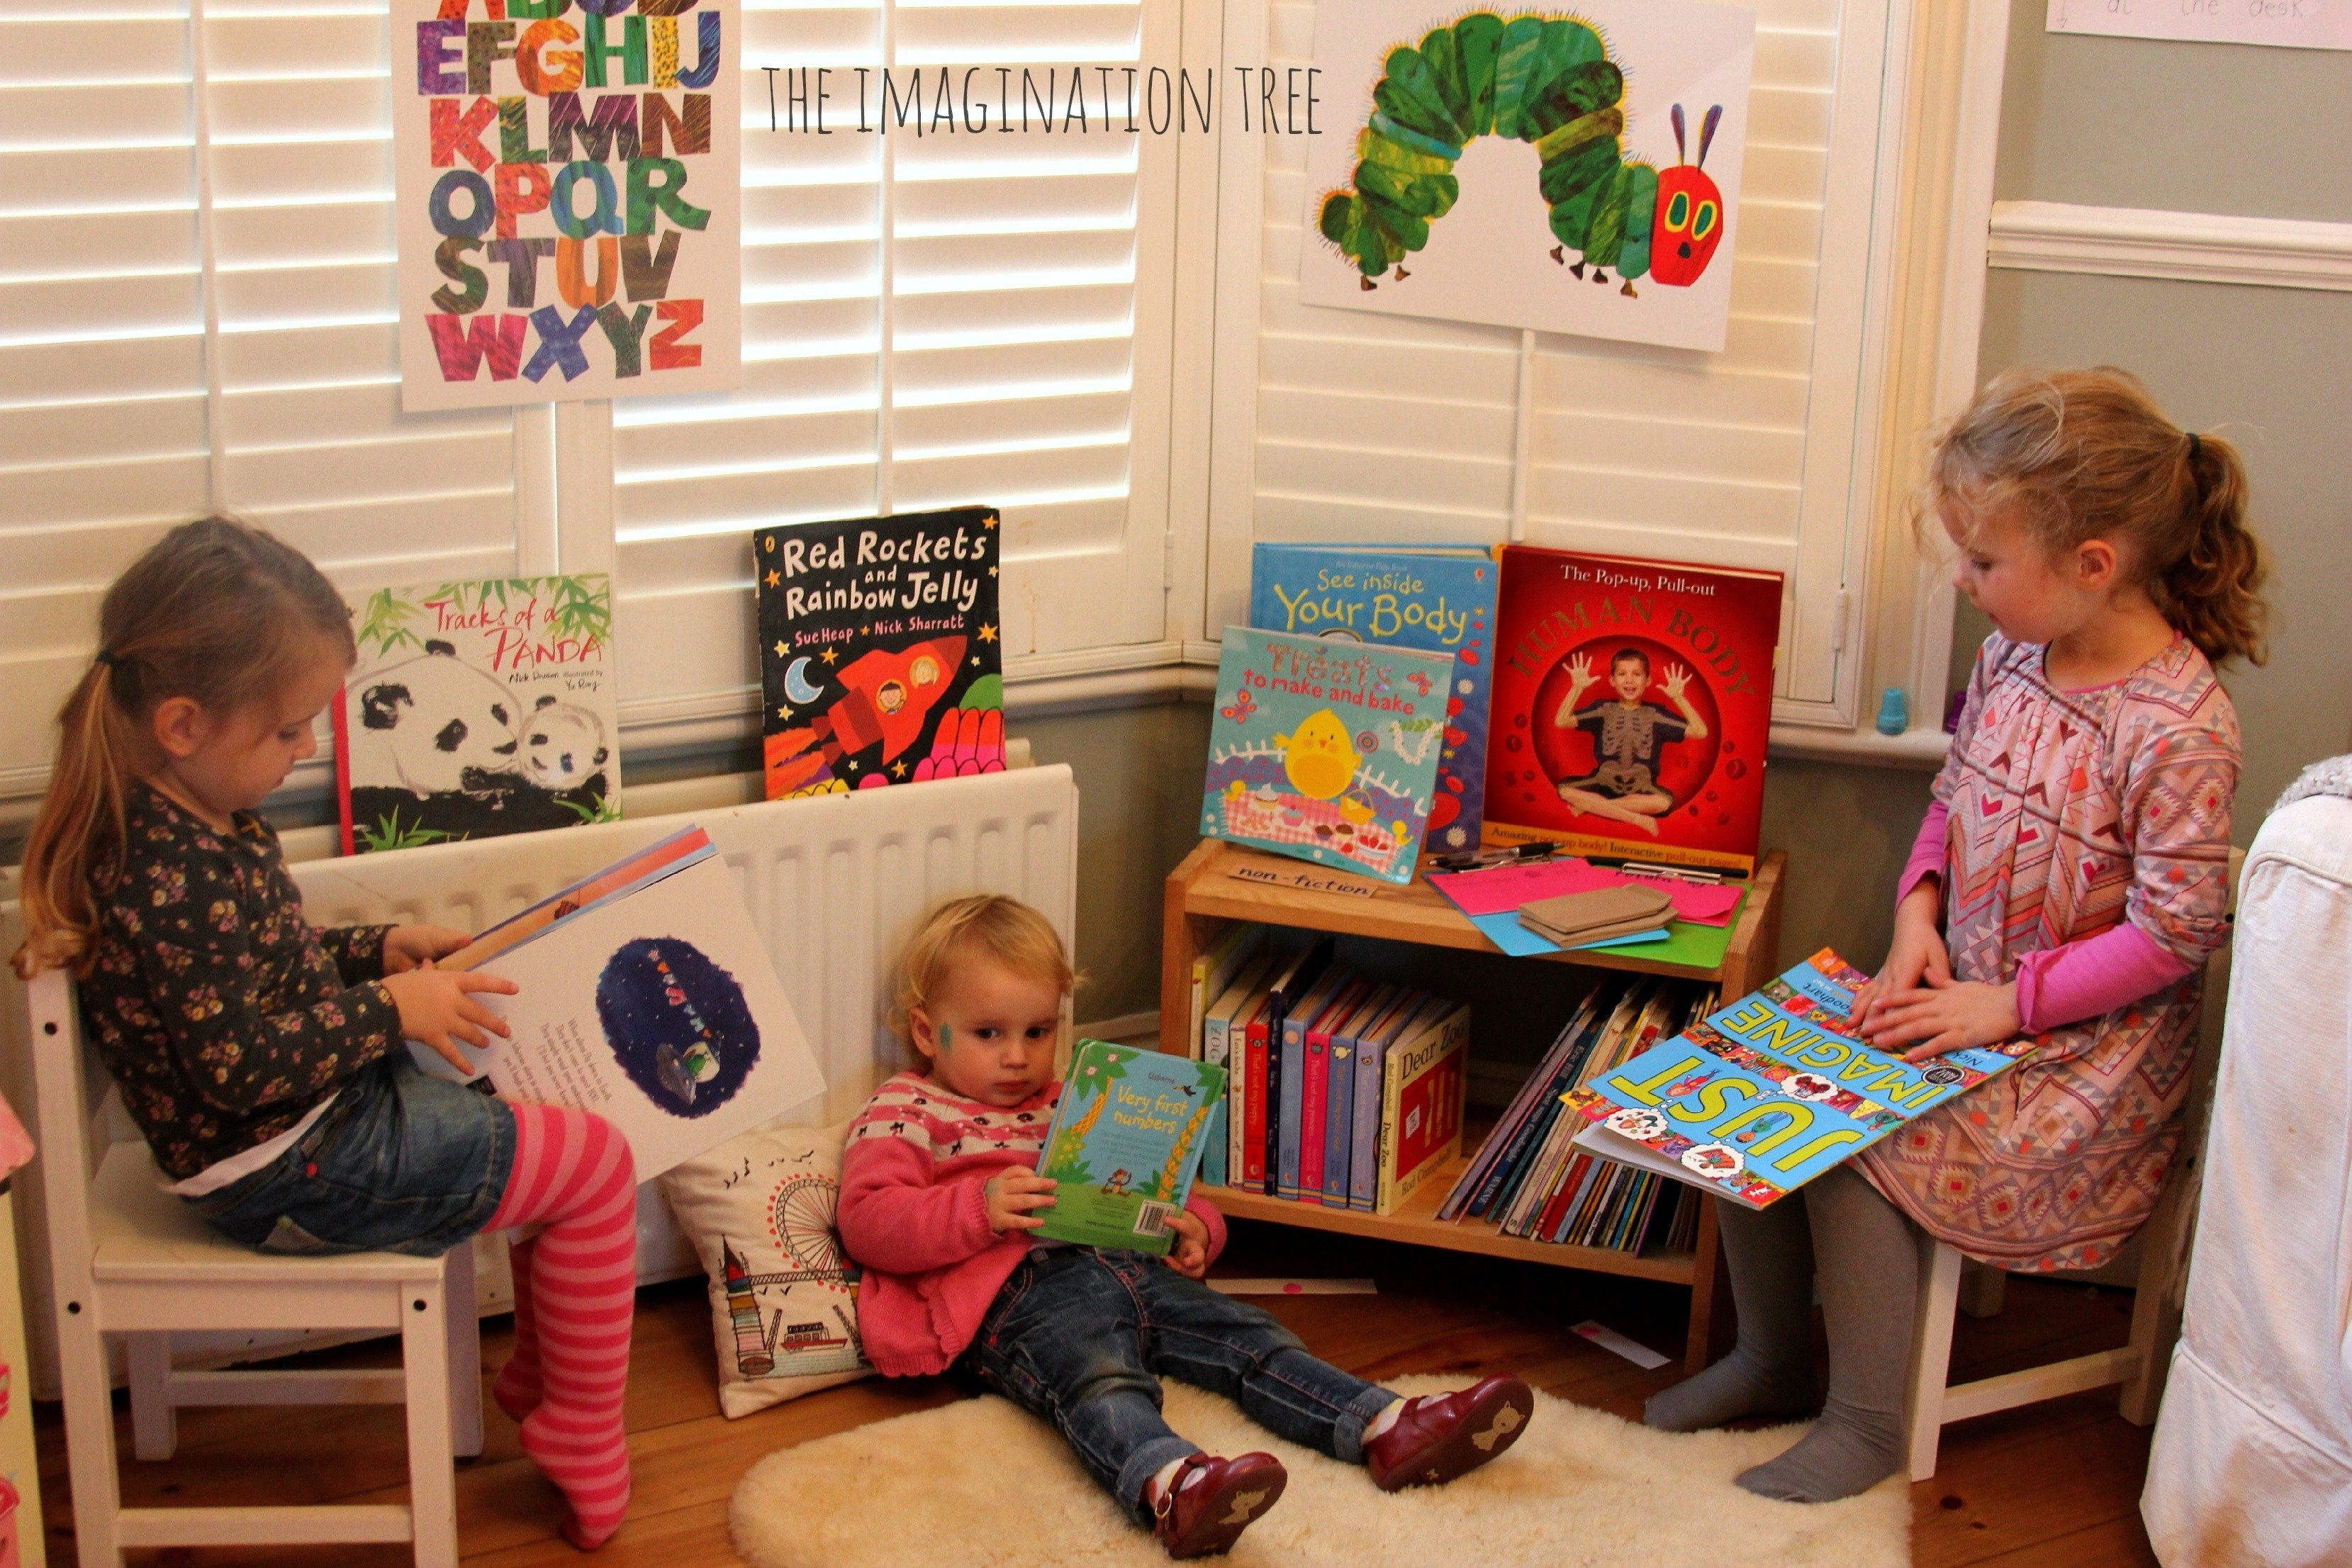 10 Lovable Role Play Ideas For The Bedroom amusing role playing ideas for the bedroom about library role play 1 2020